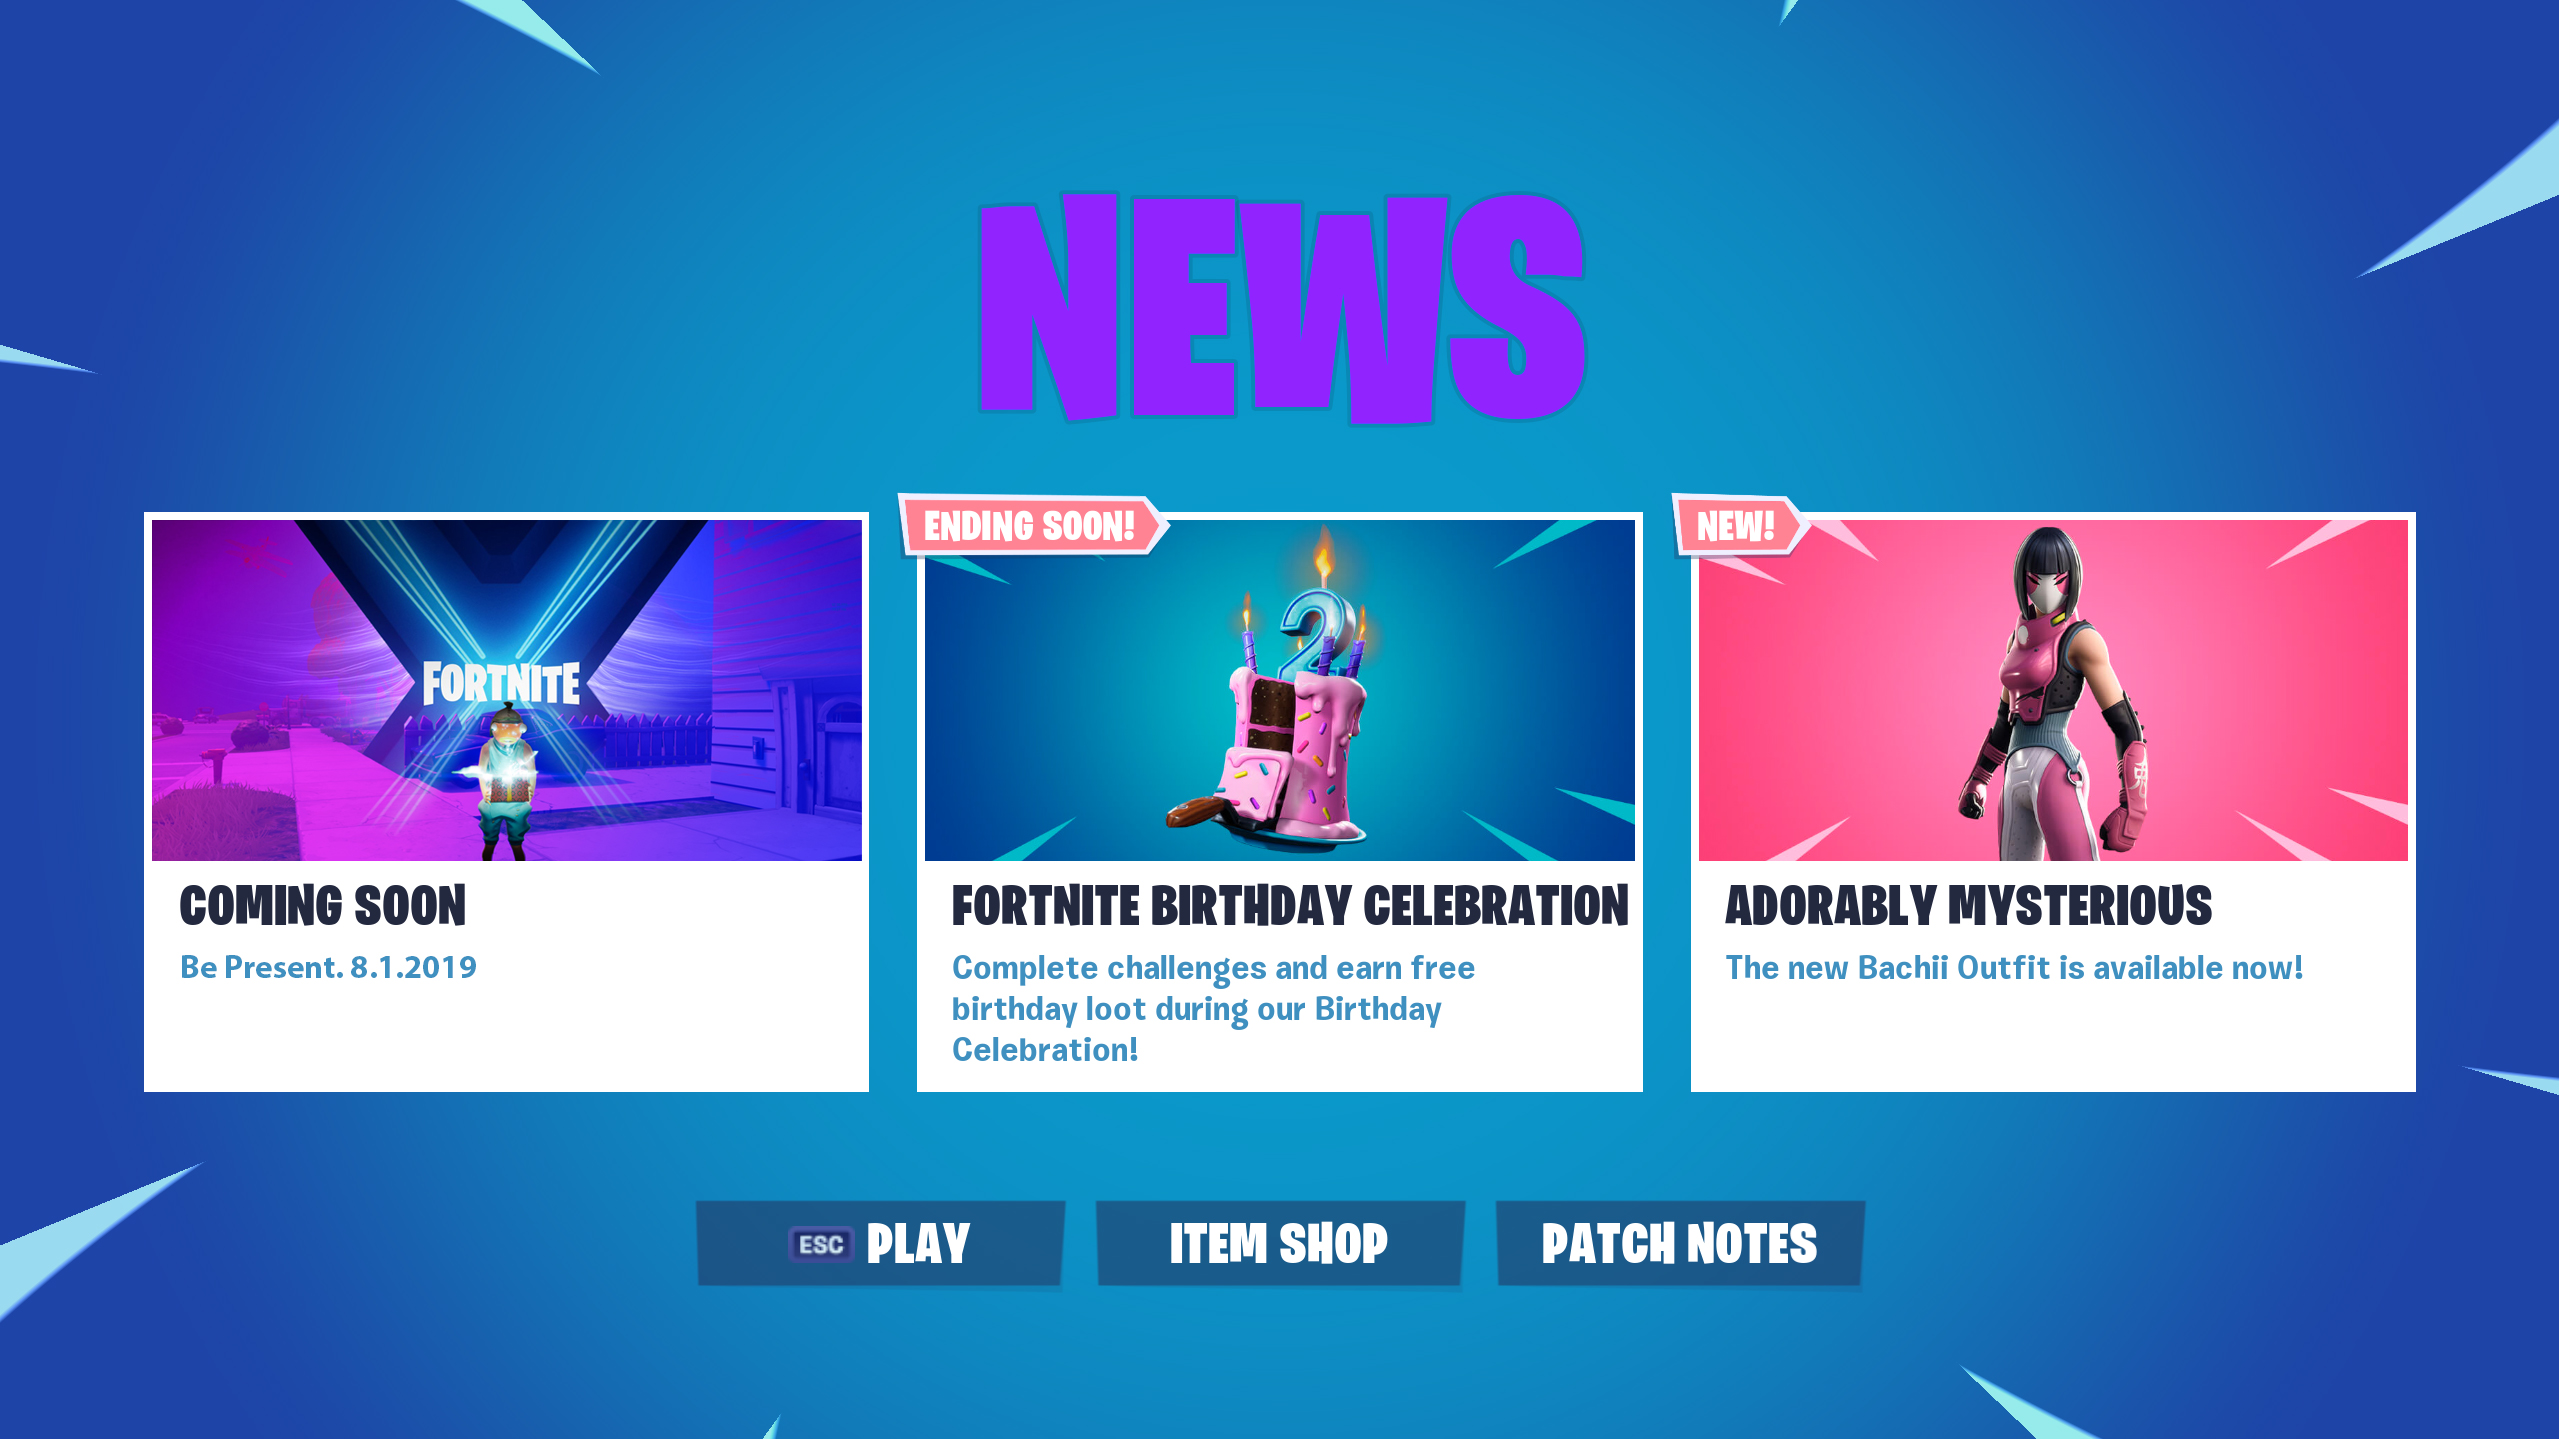 News Glitches The Third Teaser A Day Early R Fortnitebr Fortnite Know Your Meme Explore the r/fortnitebr subreddit on imgur, the best place to discover awesome images and gifs. news glitches the third teaser a day